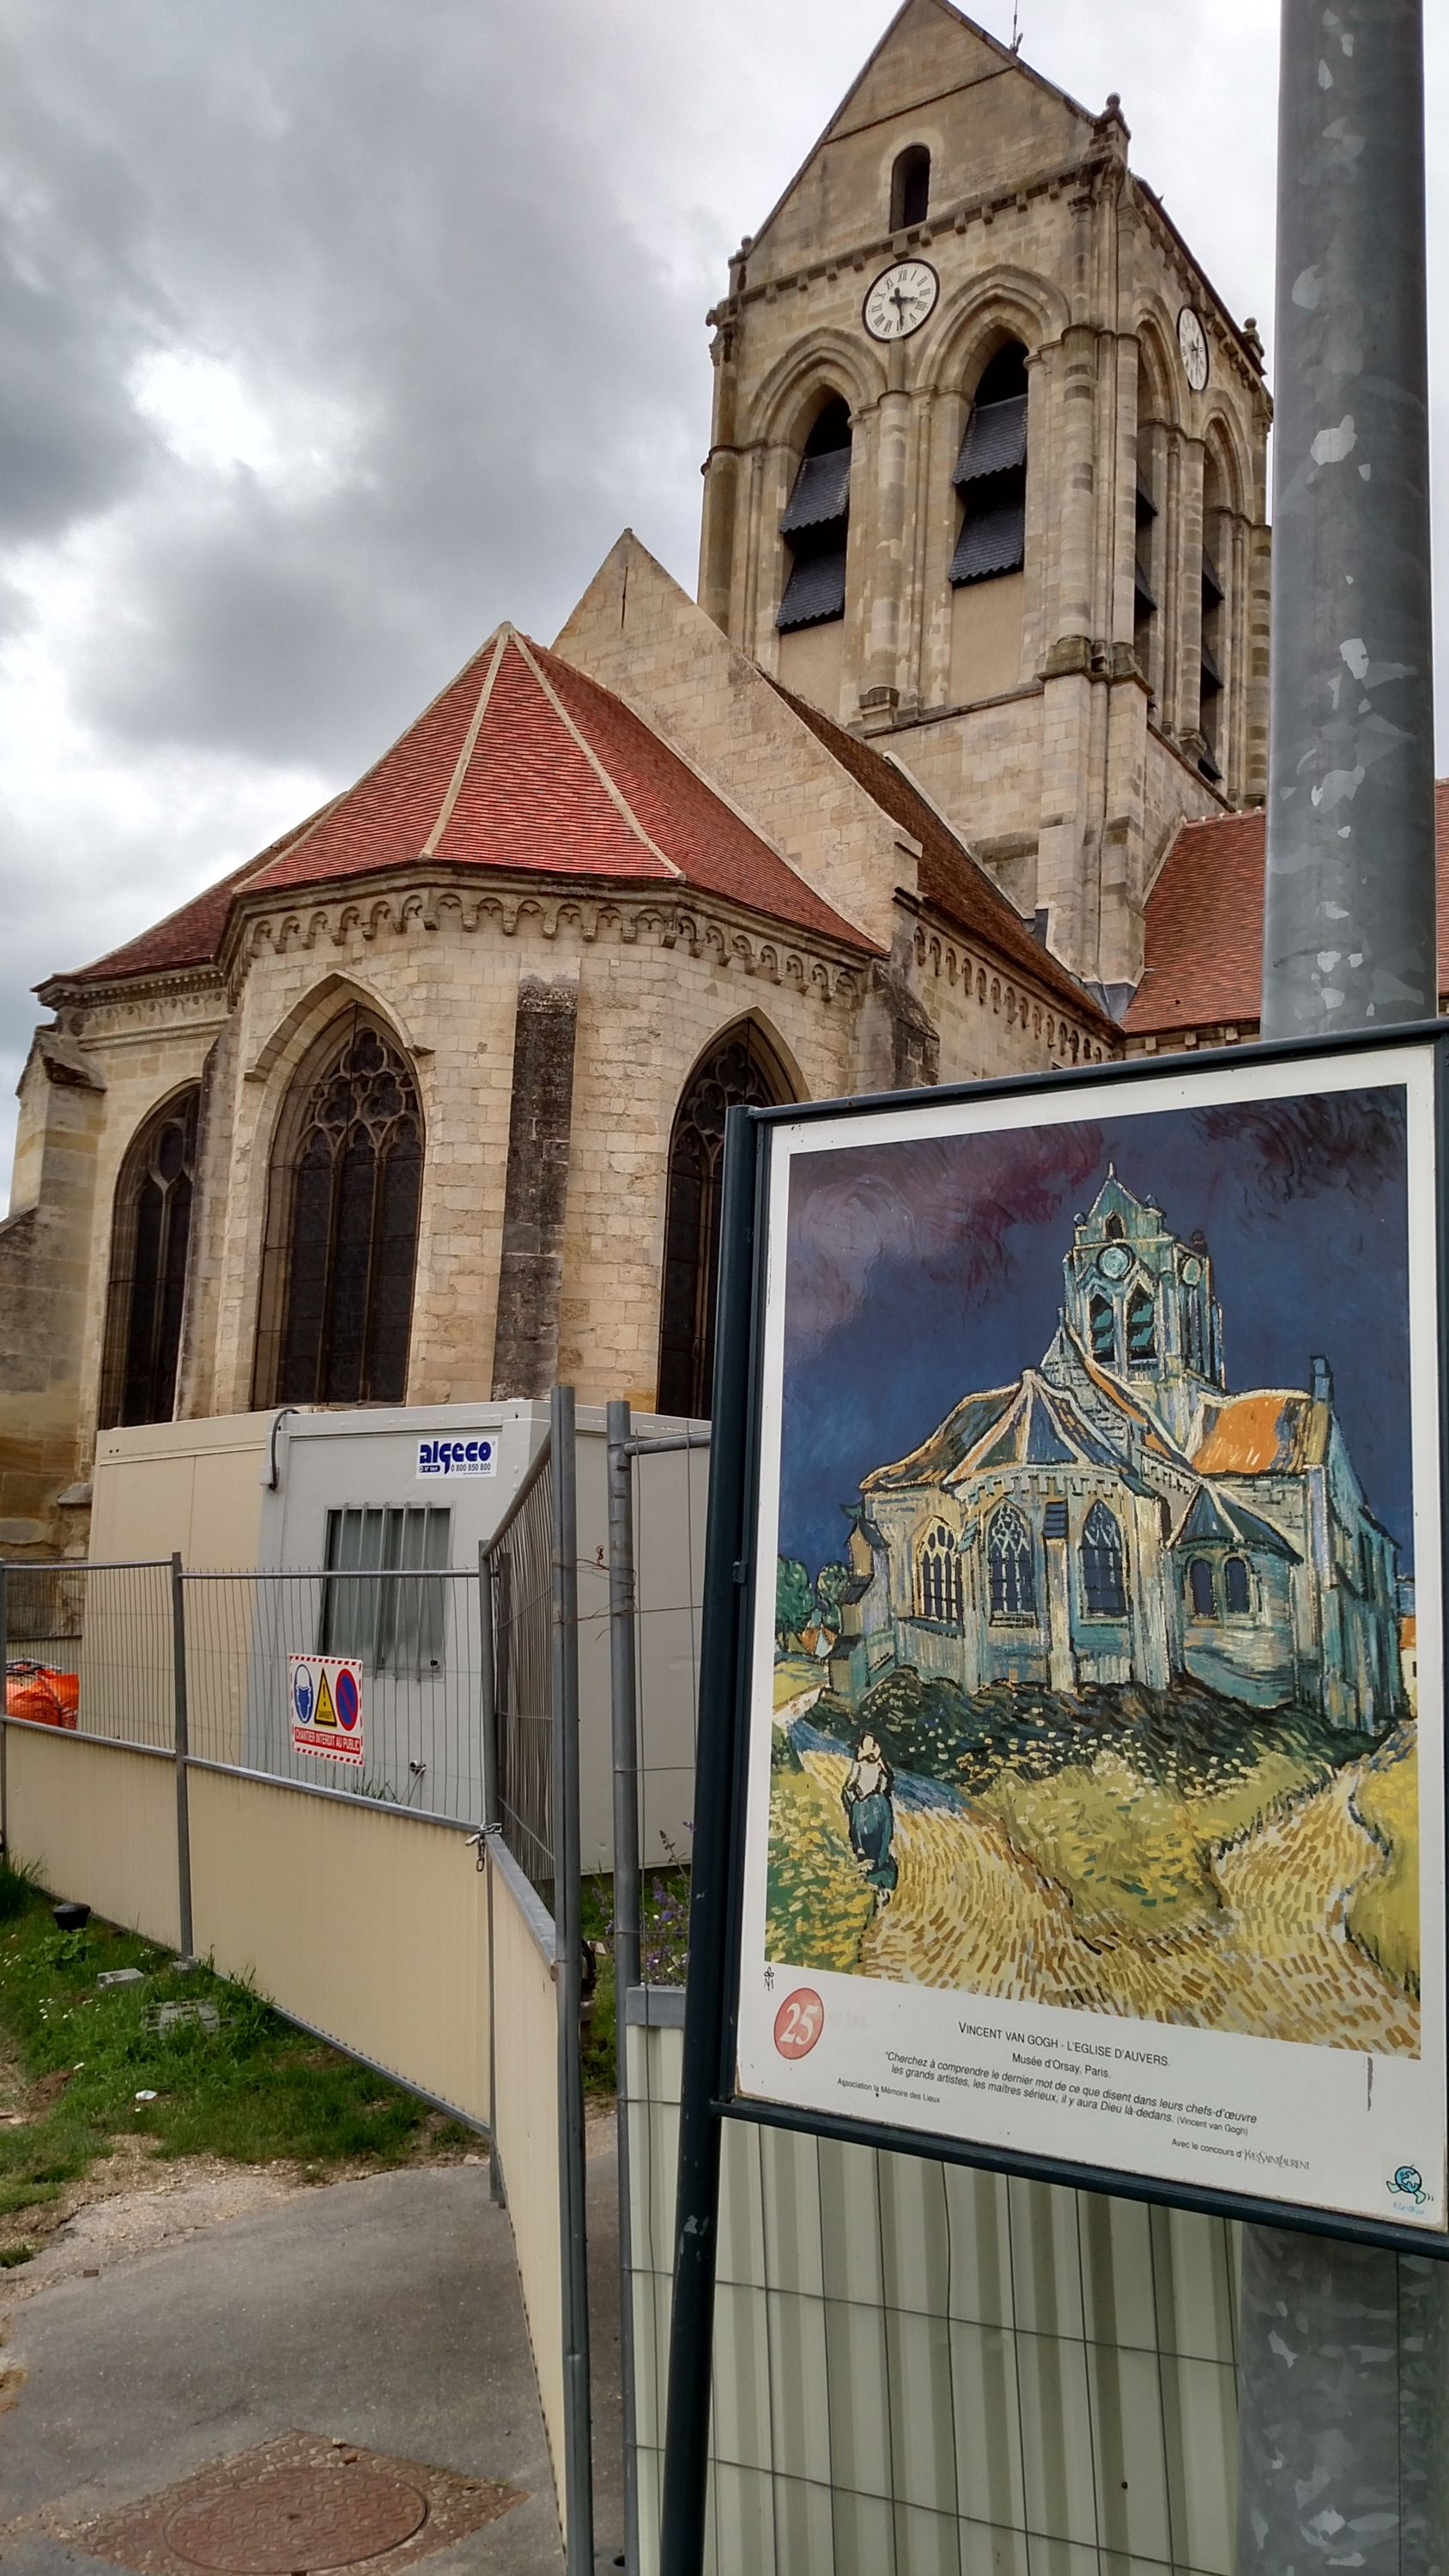 Bowers Church van Gogh